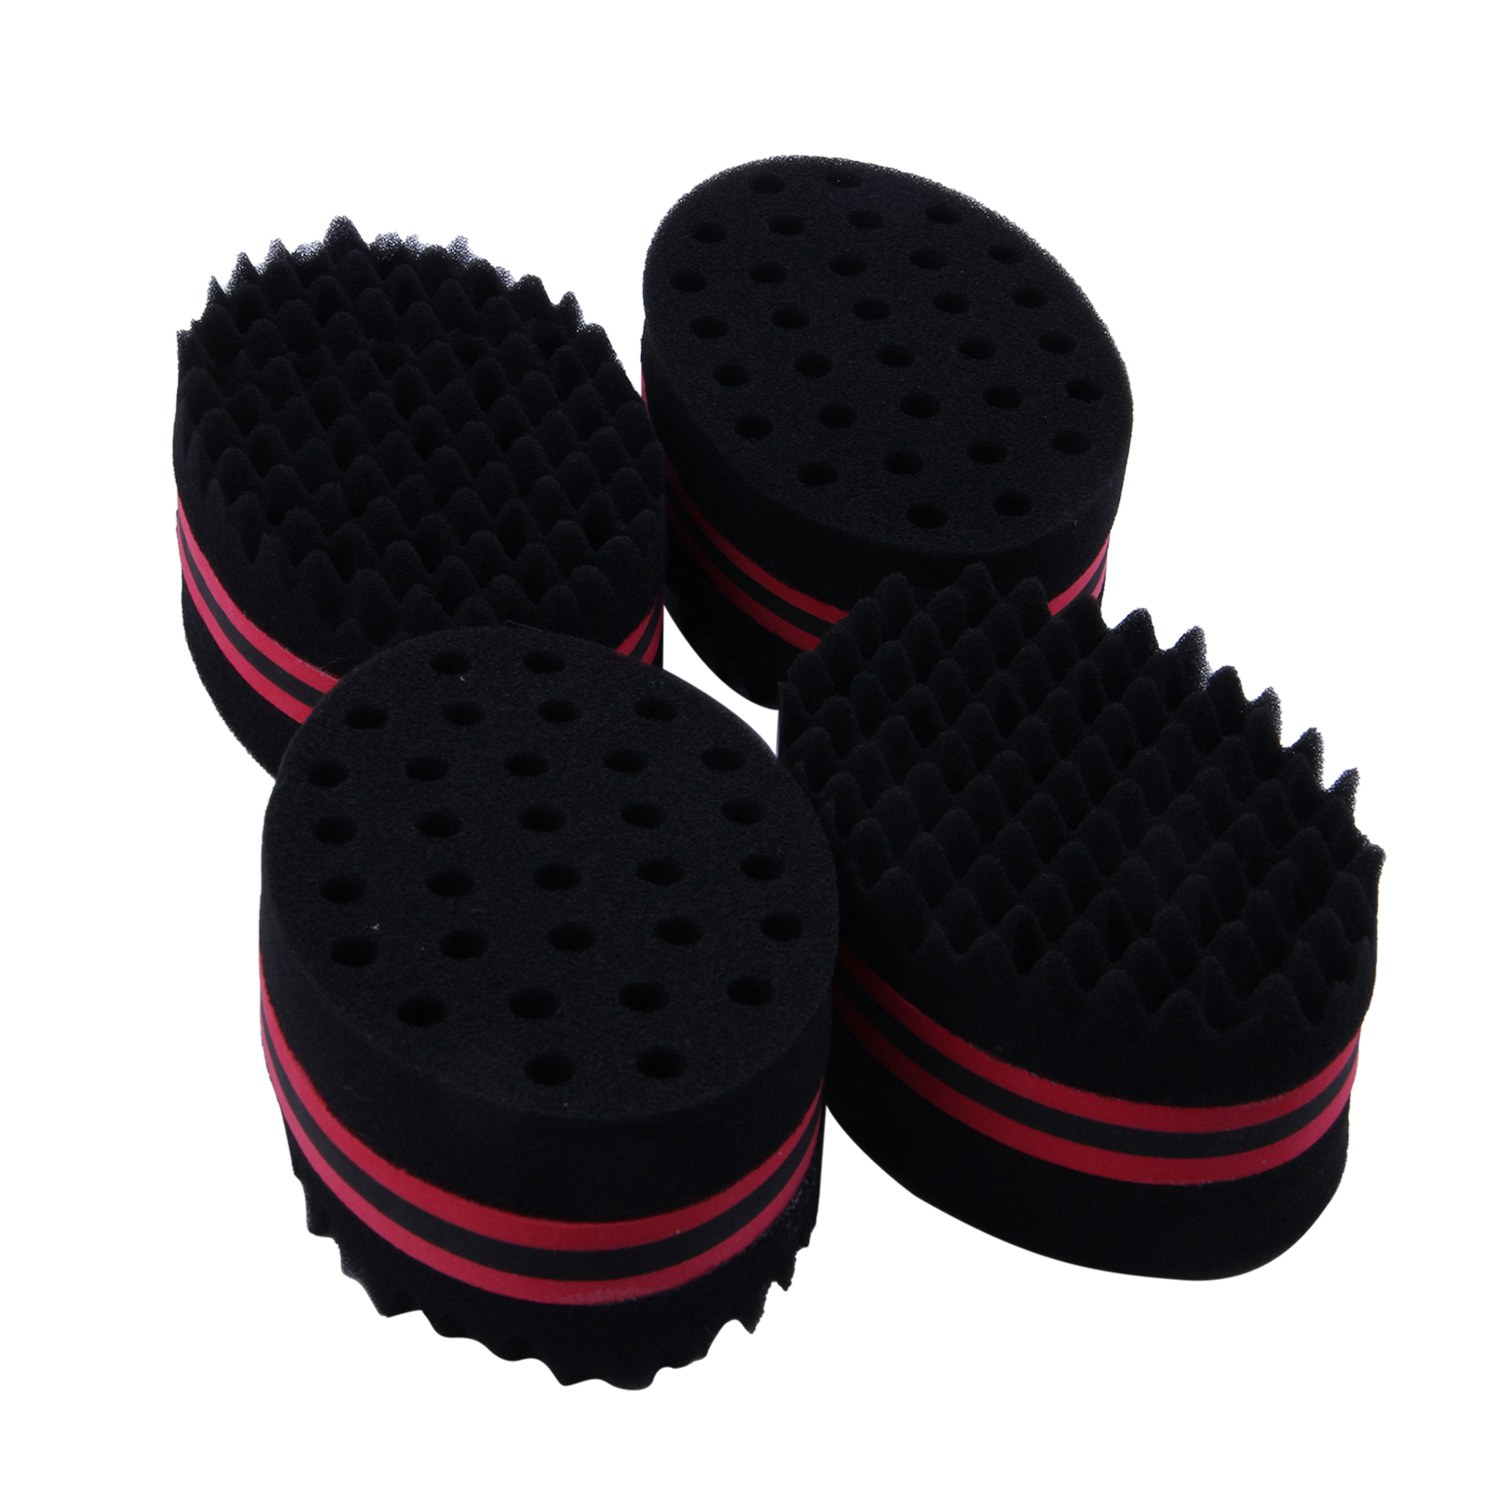 Top Sale Set of 4 Hair Brush Sponge Twist Wave Barber Tool For Dreads Afro Locs Twist Curl Black red|Curling Irons| |  - title=